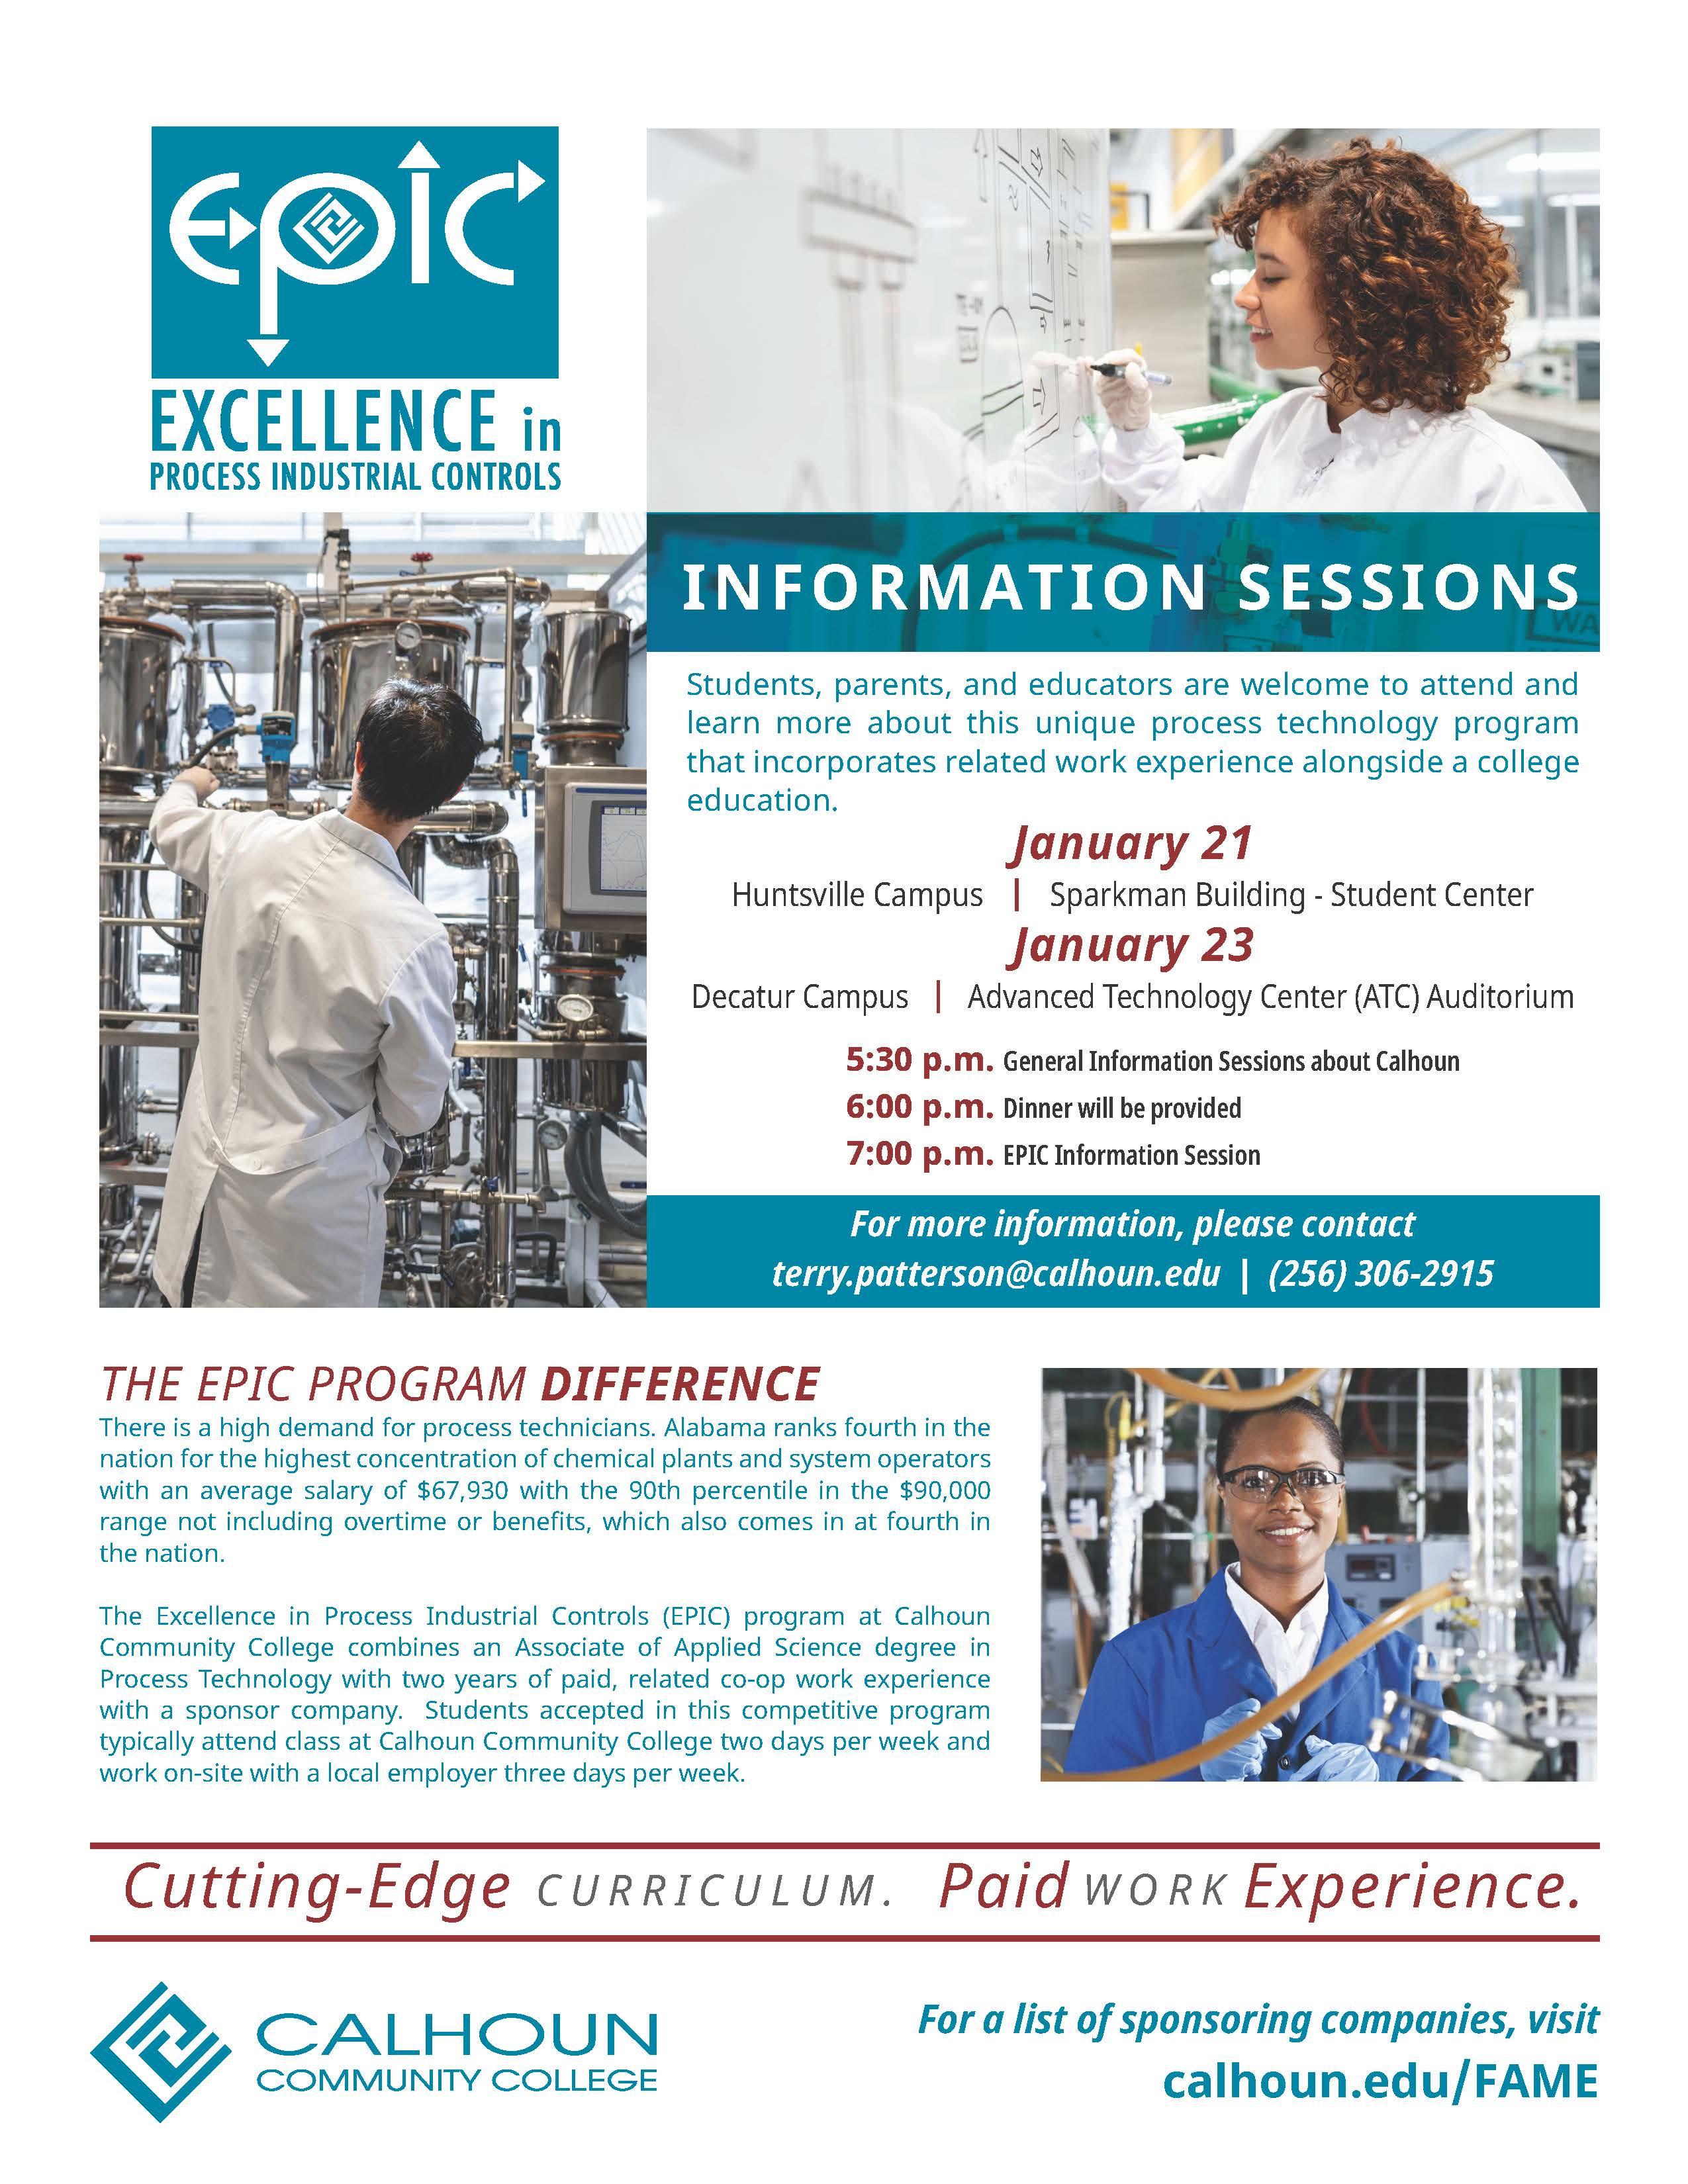 EPIC Info sessions January 2020 flyer